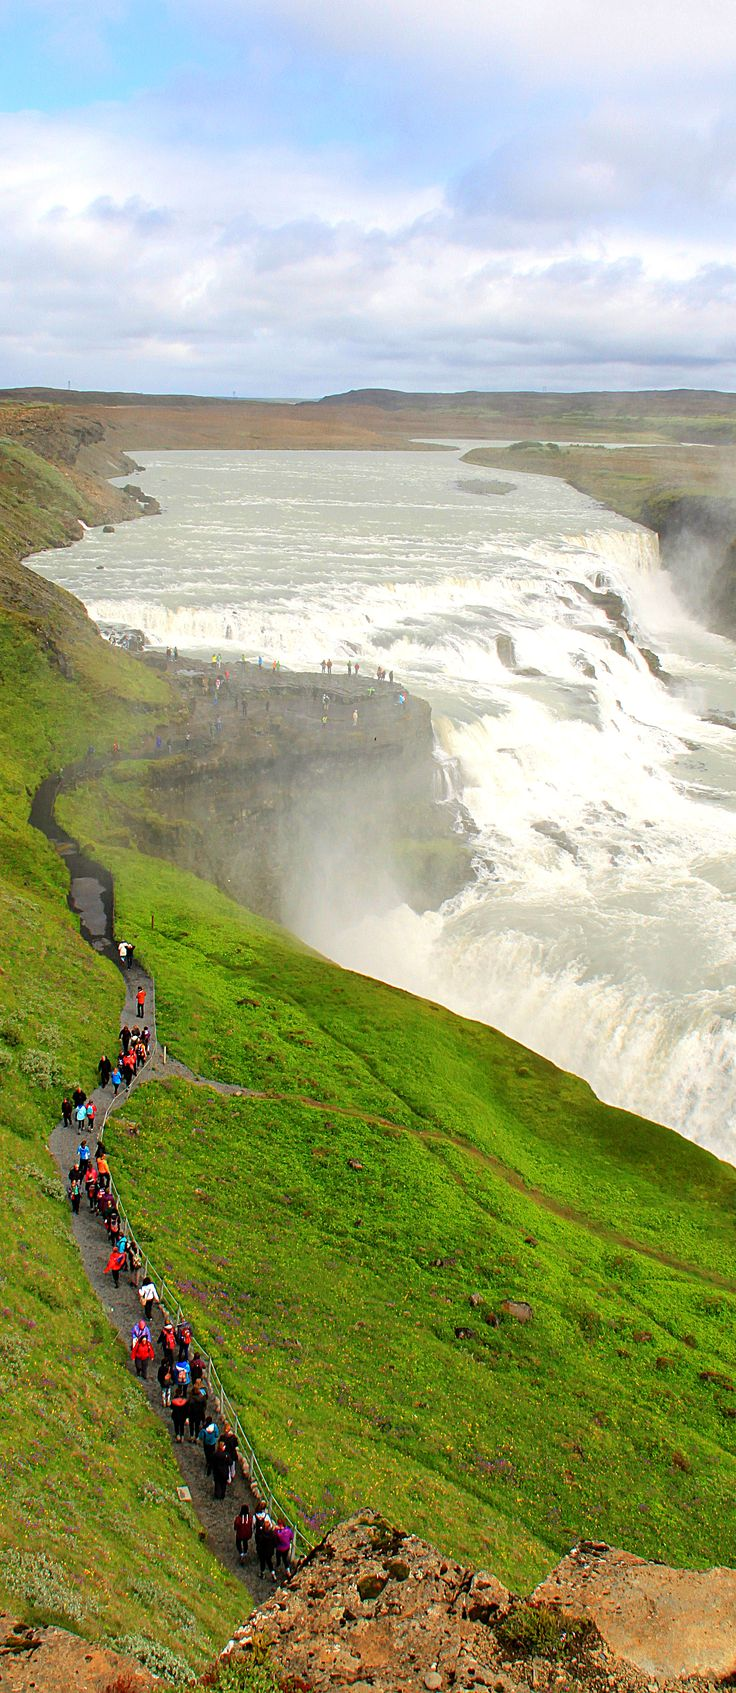 Gullfoss waterfall, Iceland. WOW. This looks amazing!!! I want to see it for myself! Checkout www.tripcapsule.net for more travel tips and stories. ;)